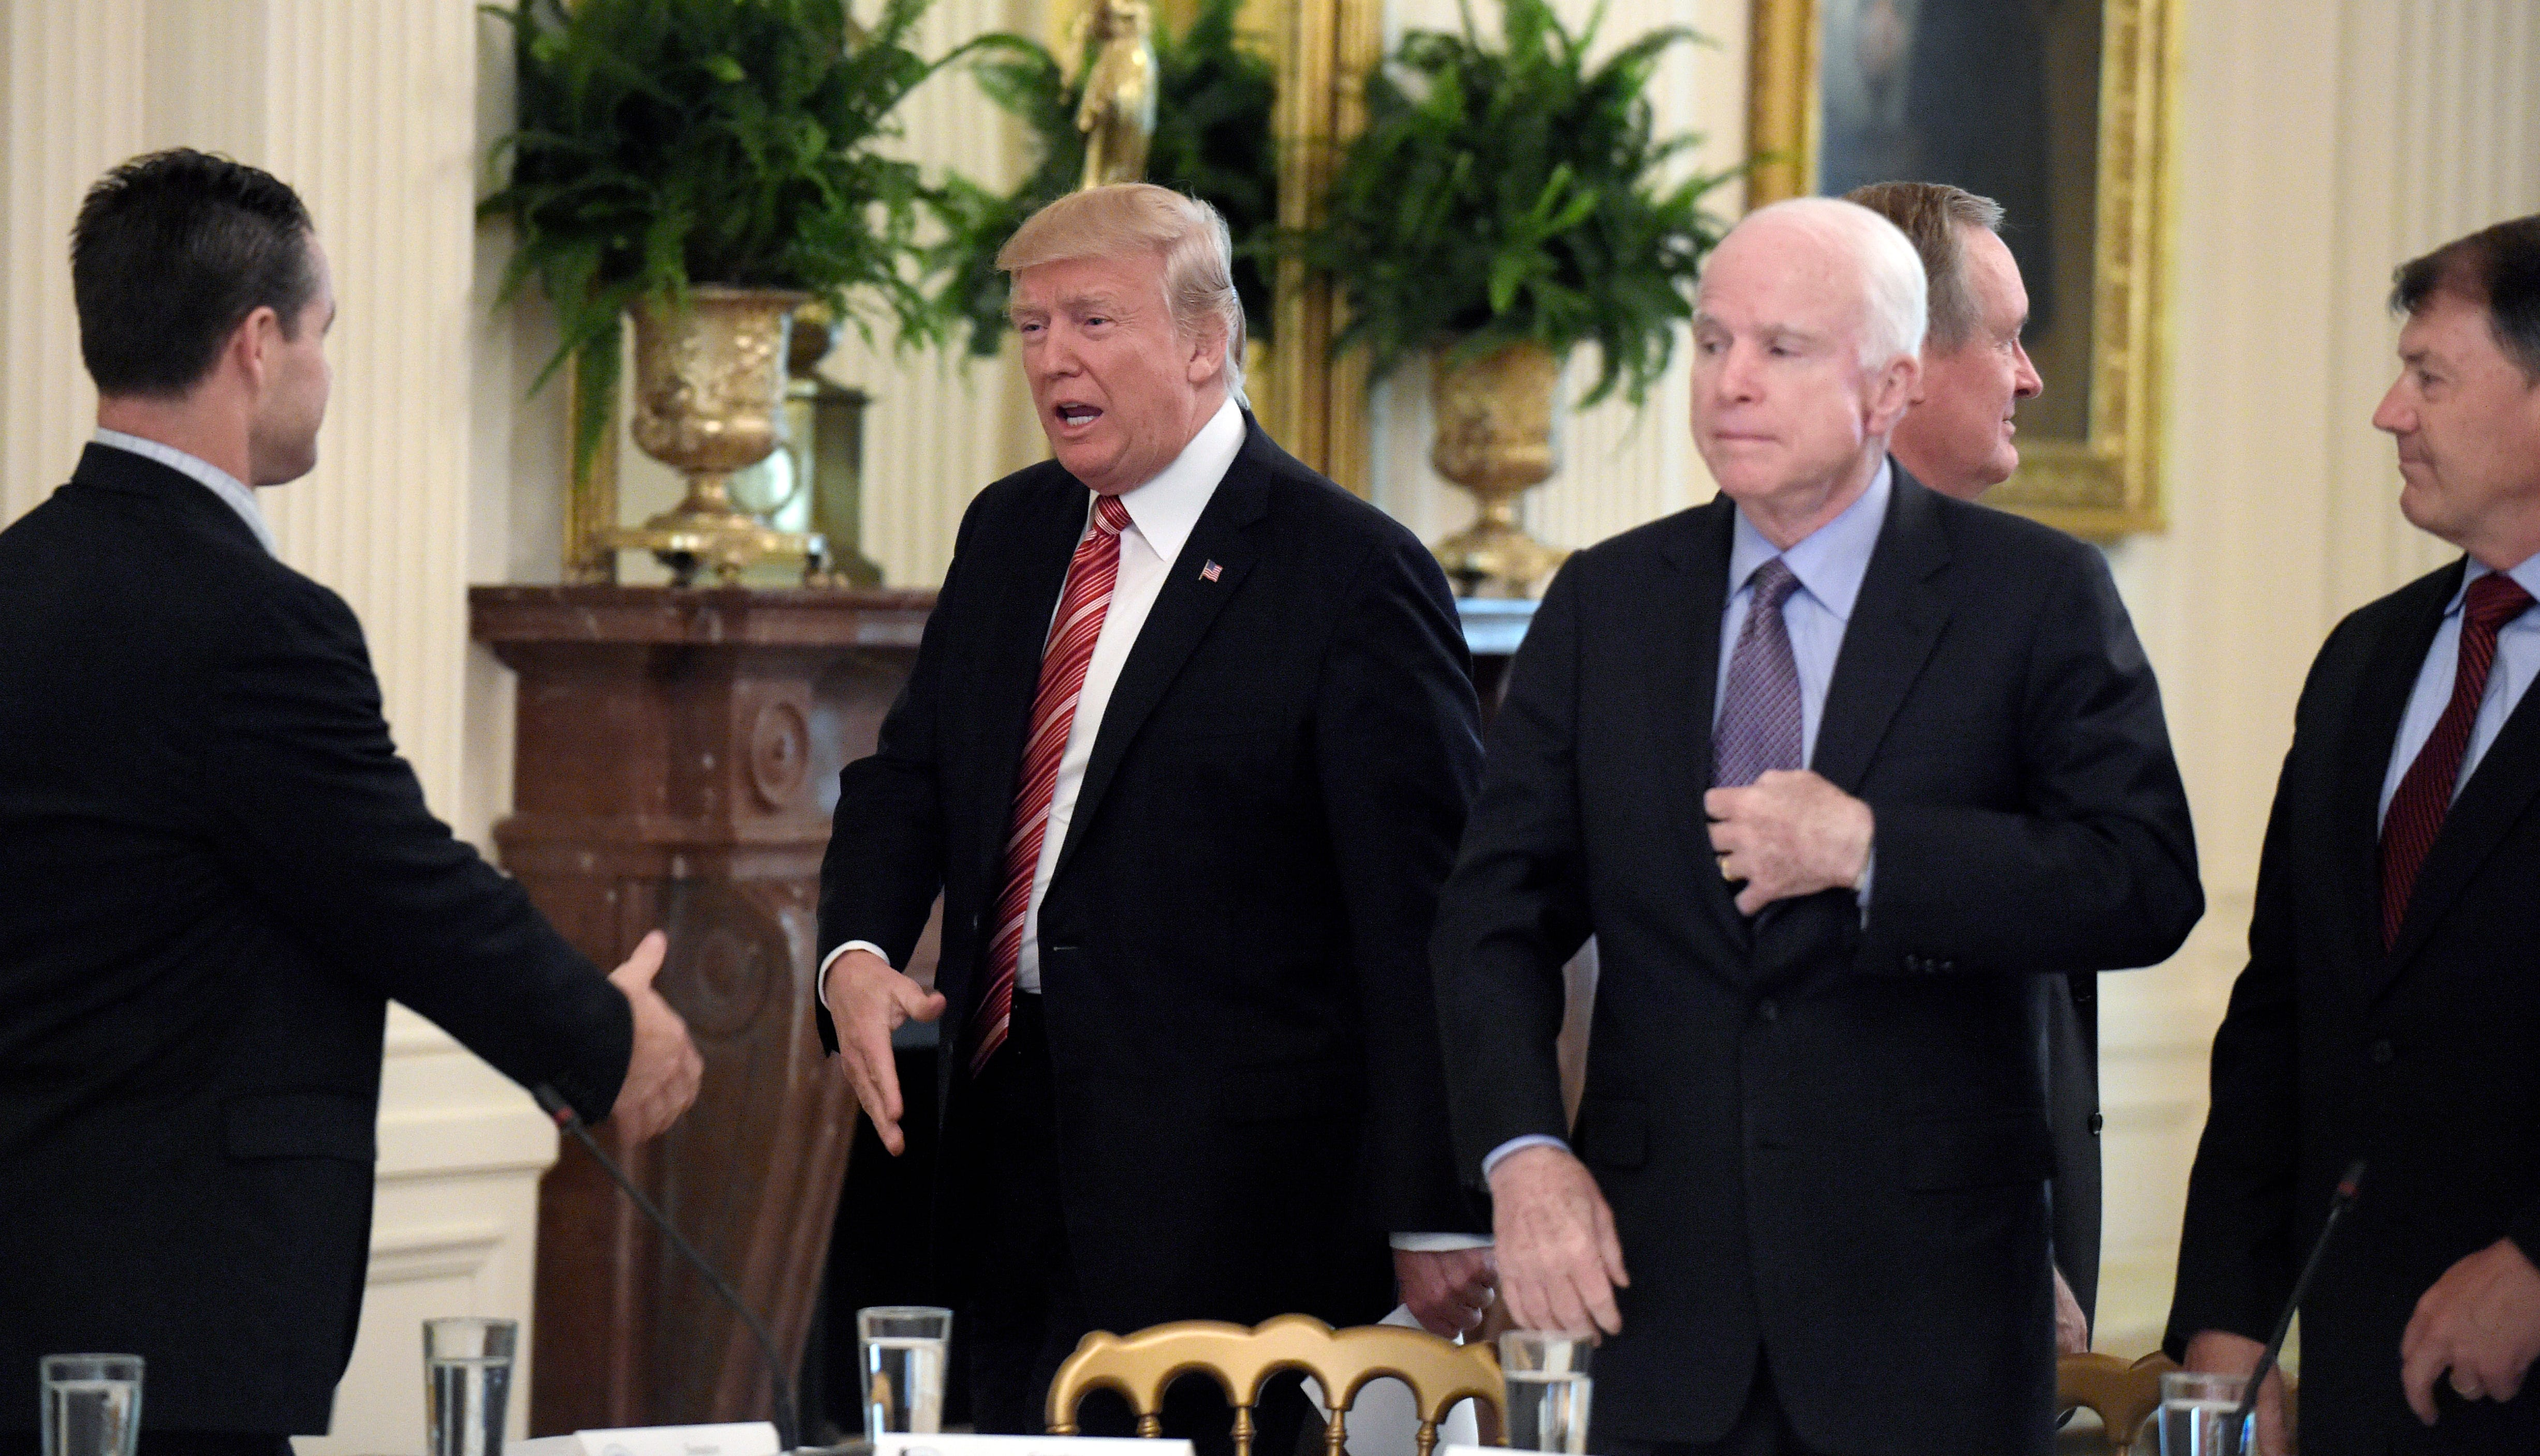 President Donald Trump's brevity on John McCain speaks volumes about their strained relationship